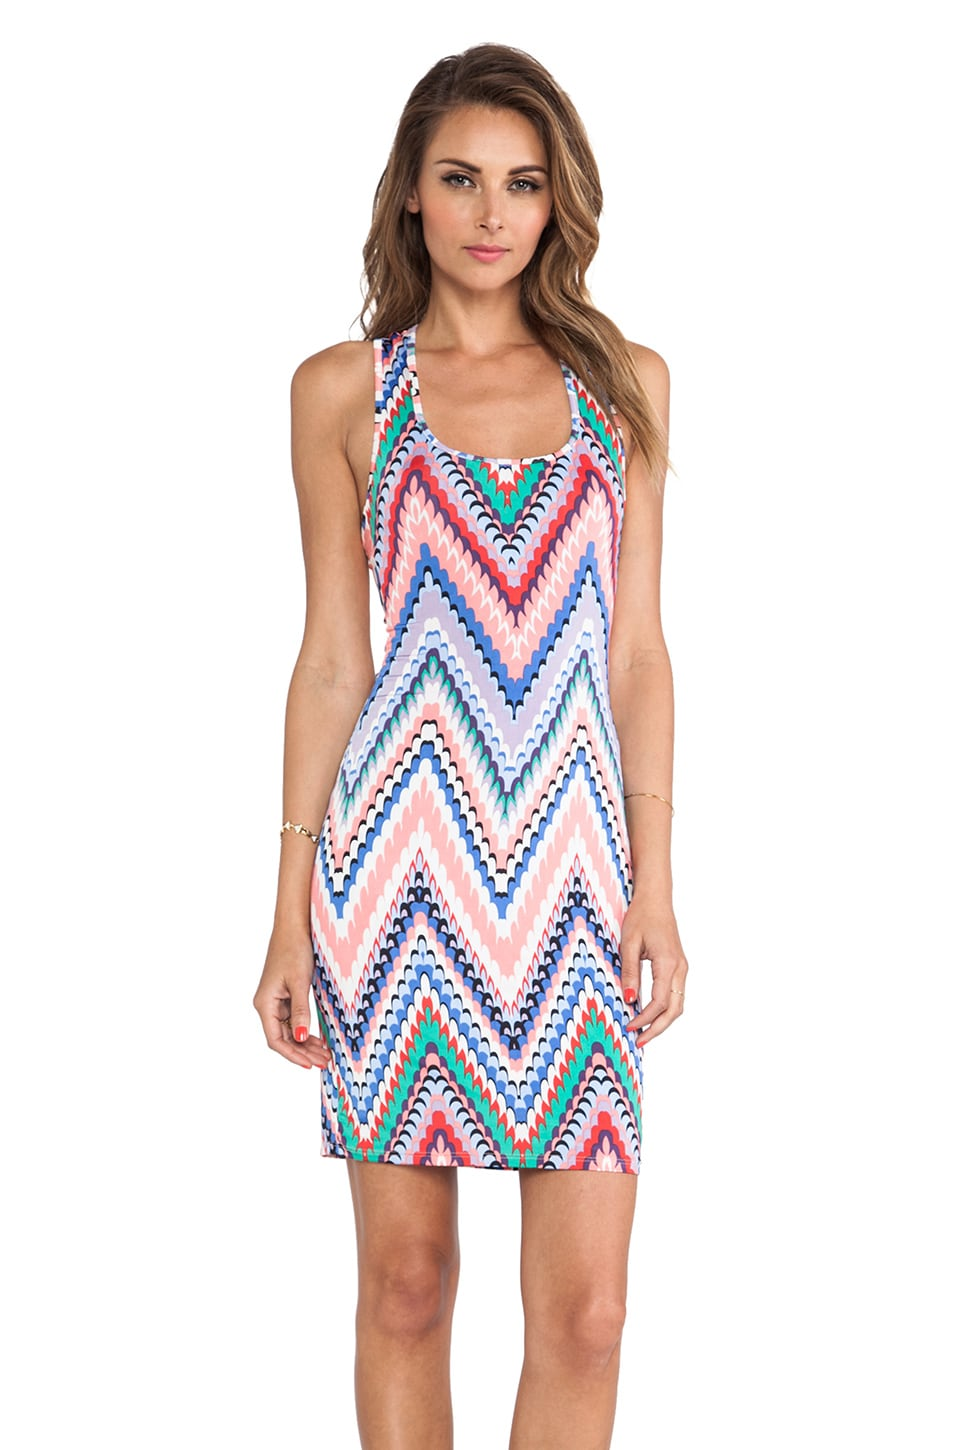 T-Bags LosAngeles Printed Tank Dress in Zig Zag Multi